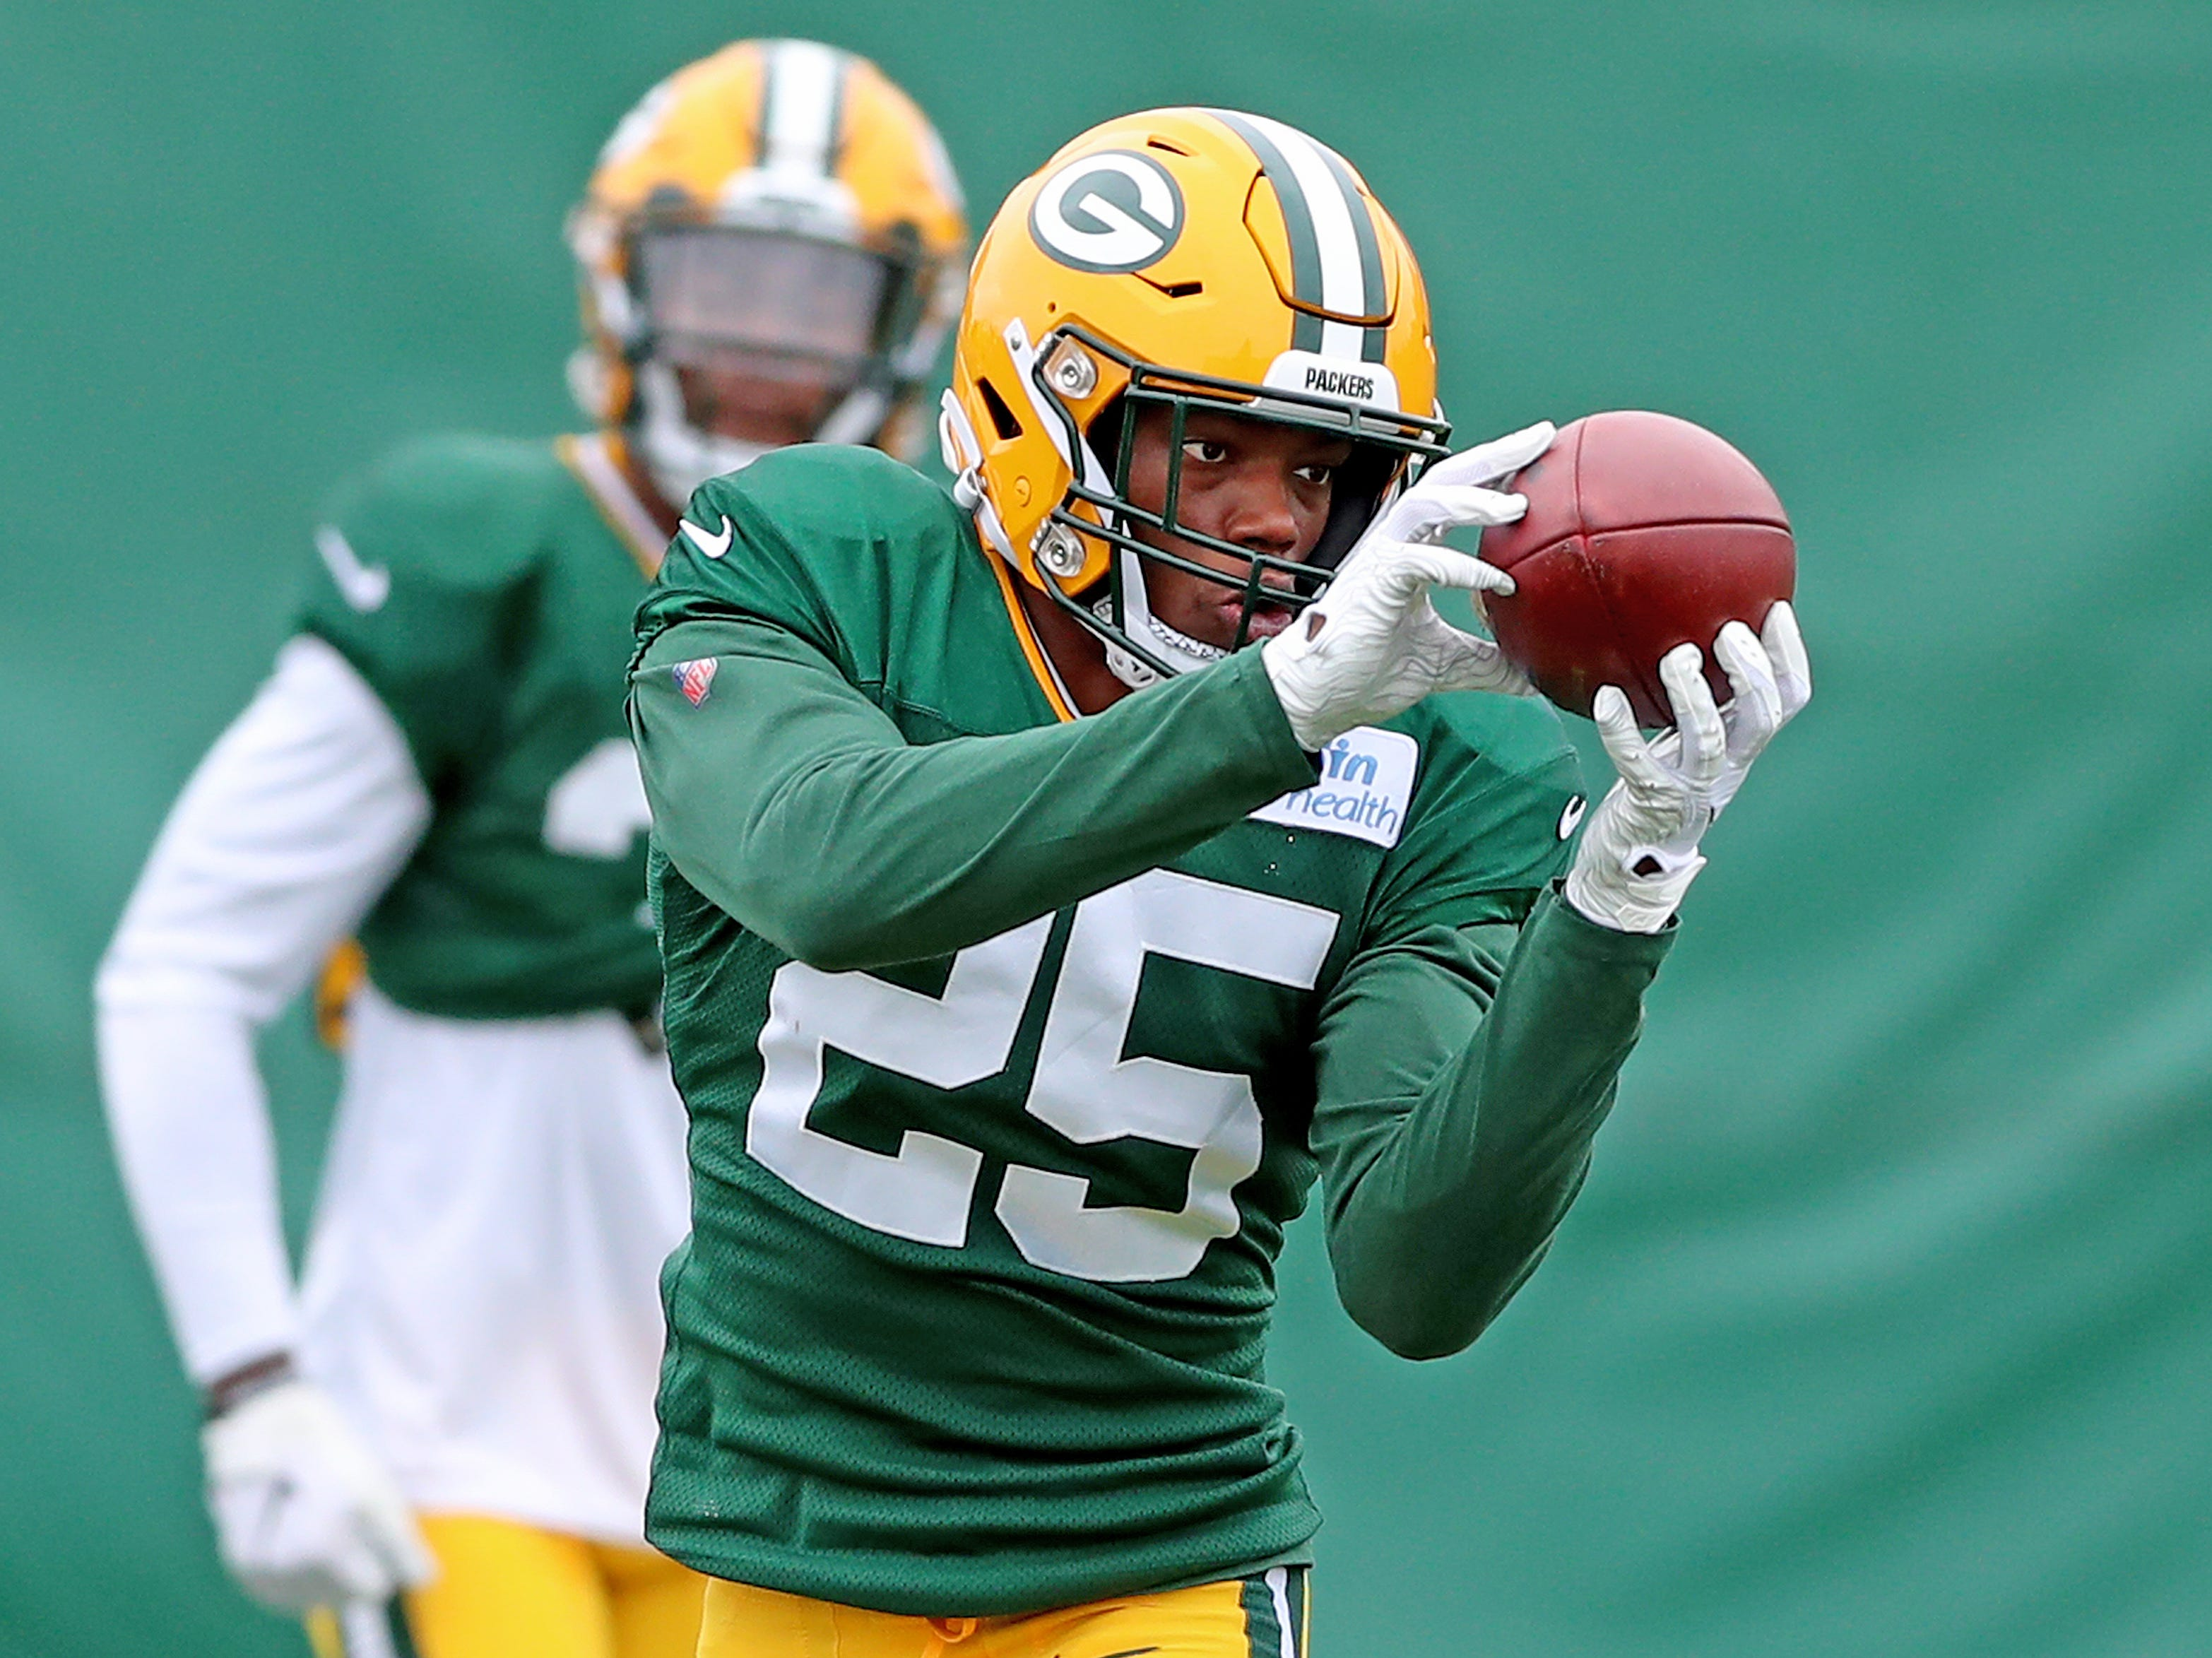 Green Bay Packers defensive back Will Redmond (25) catches a ball during practice on Clarke Hinkle Field Friday, October 12, 2018 in Ashwaubenon, Wis.